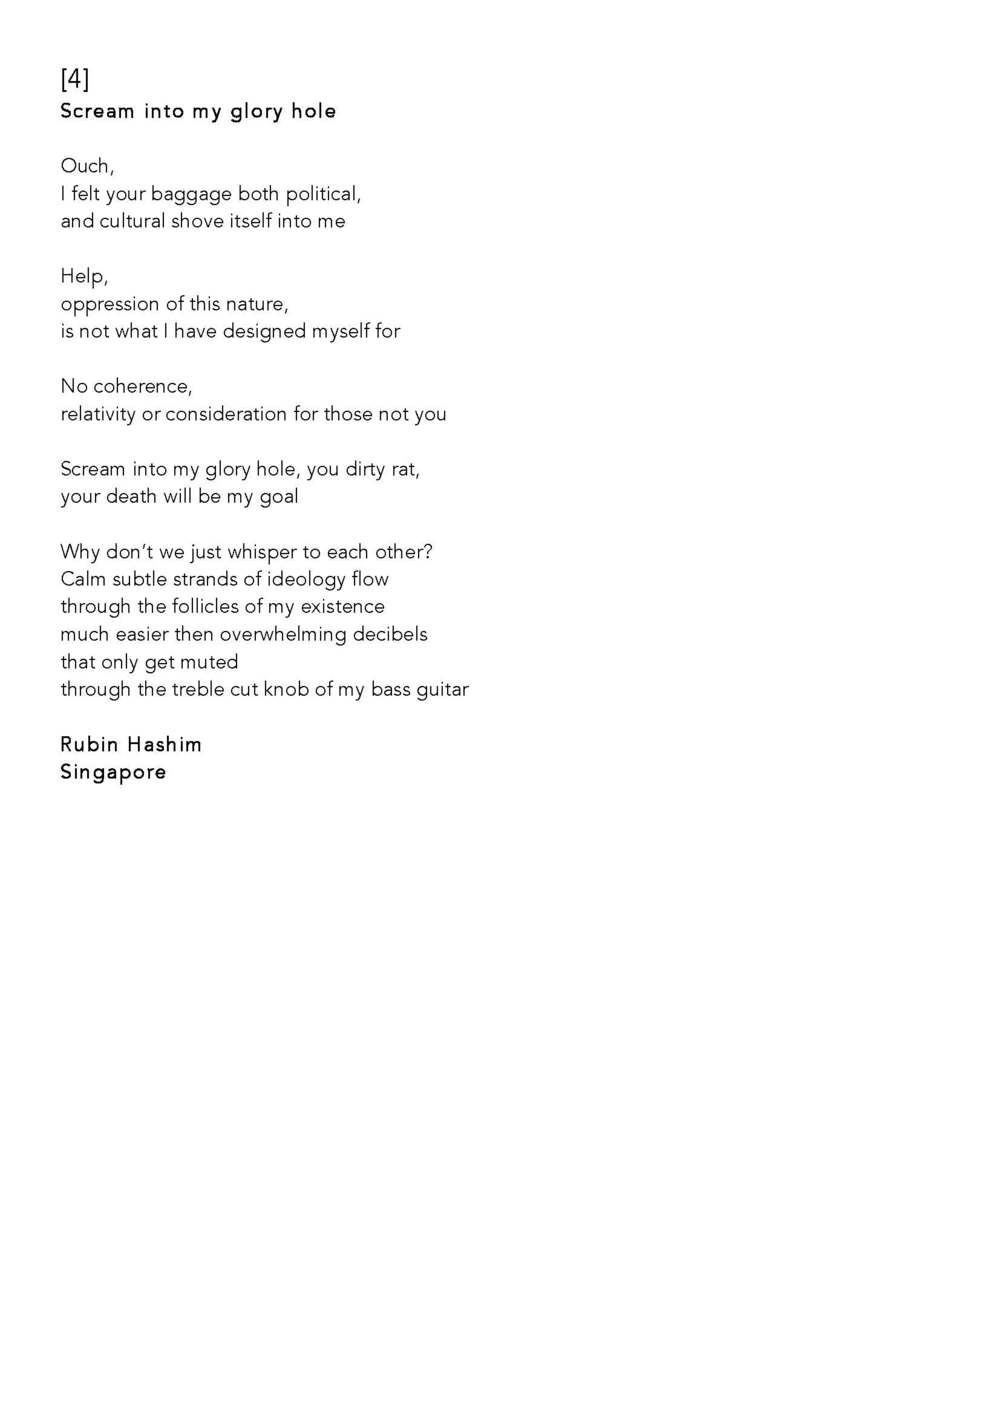 Poetry Collection - Everyone can Poetry _ For 12 May 2014 - R2_Page_04.jpg